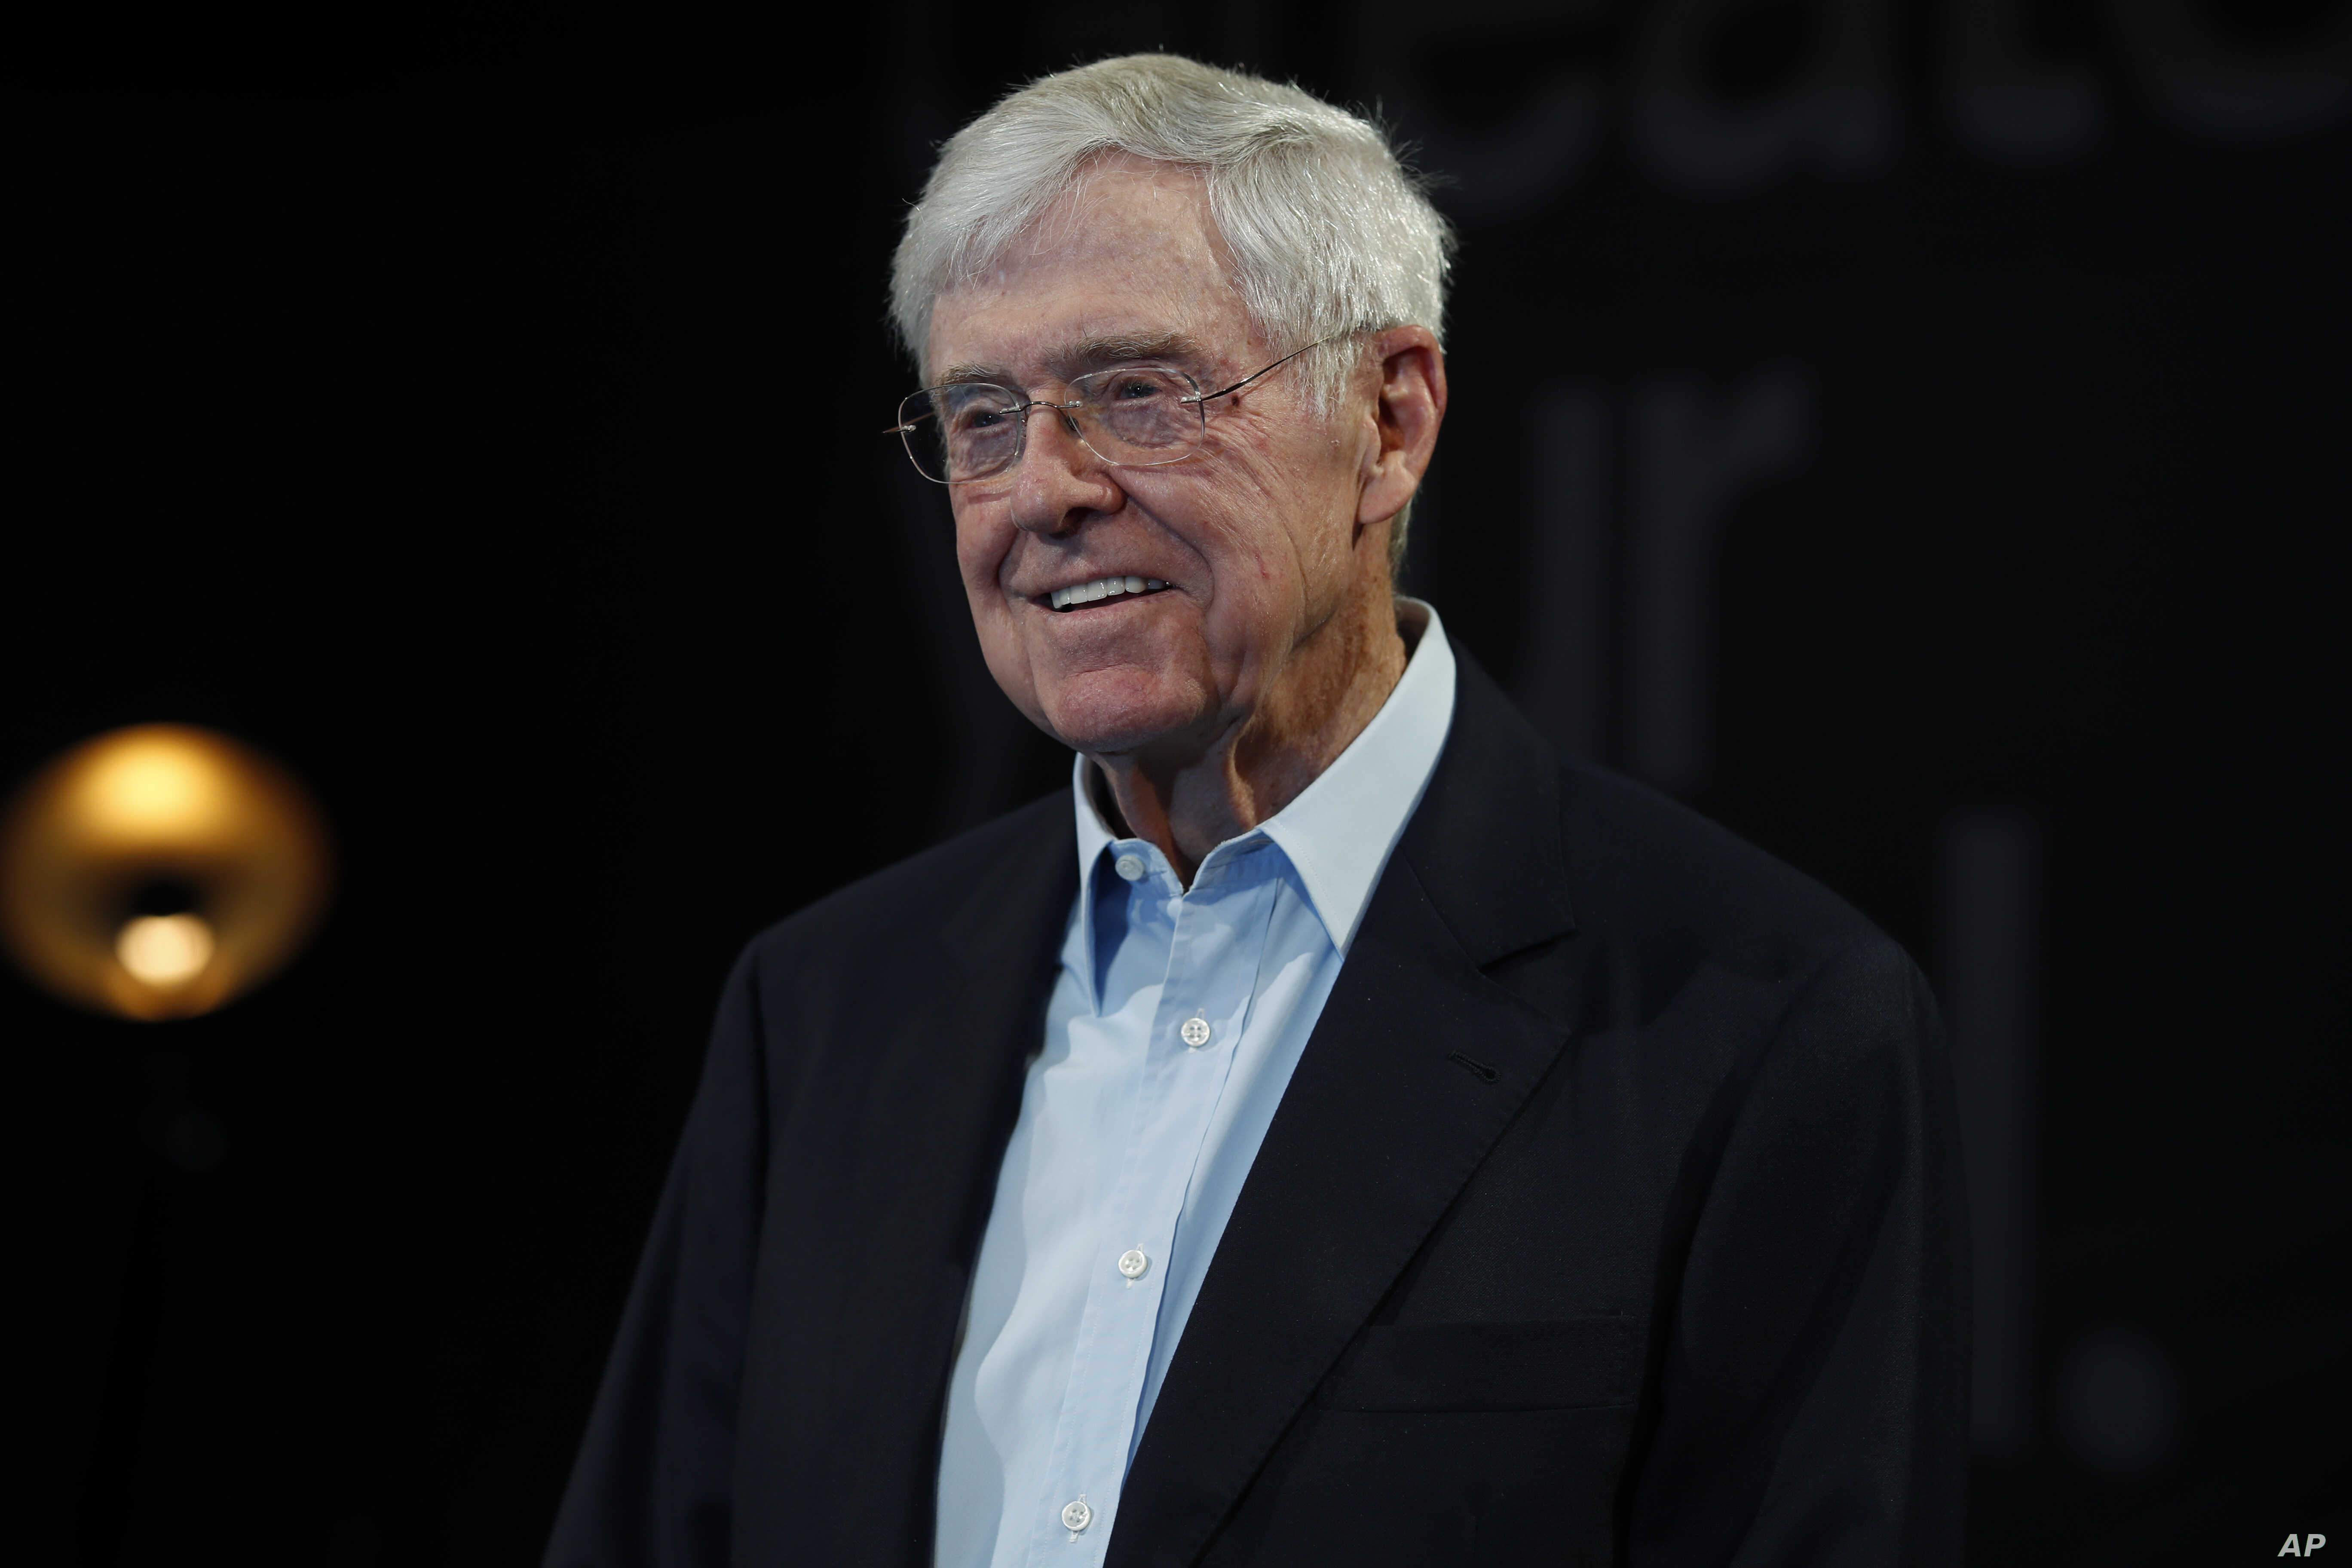 Charles David Koch We Know Who You Are >> Billionaire David Koch Conservative Donor Dies At 79 Voice Of